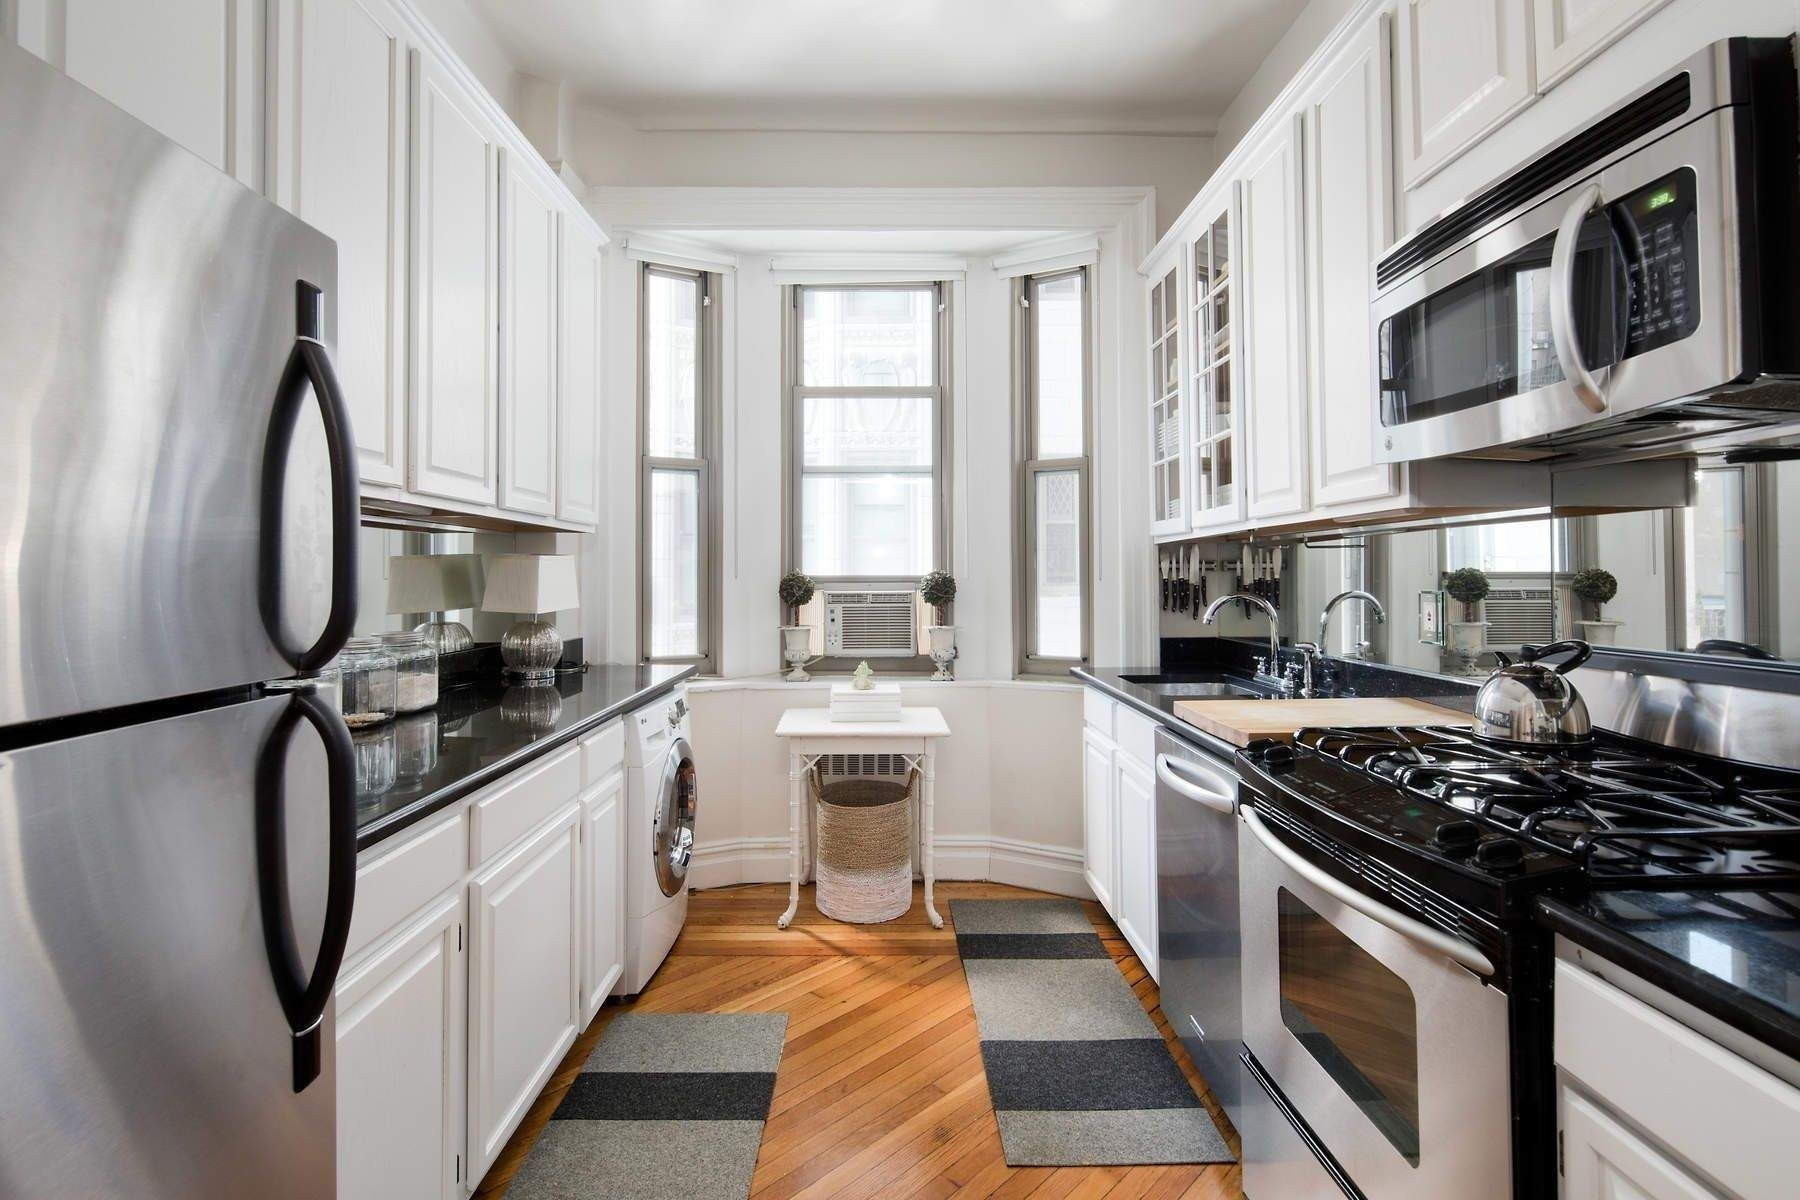 3. Condominiums for Sale at 36 Gramercy Park East, 7W Gramercy Park, New York, NY 10003